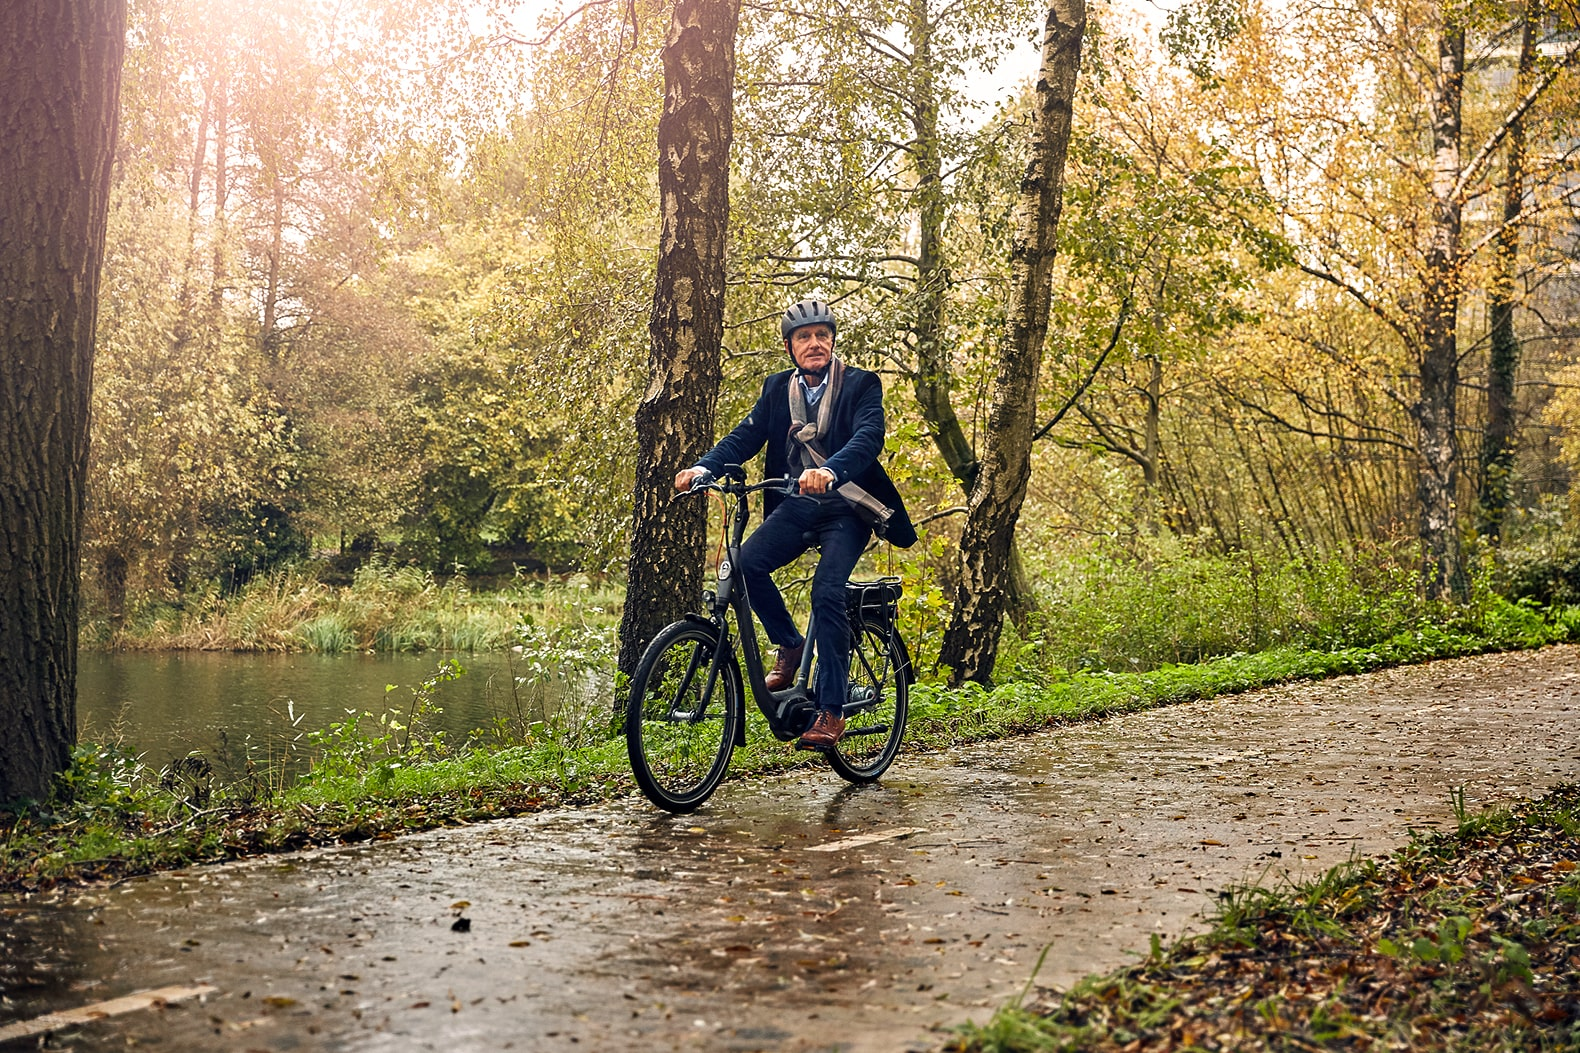 Man on a bicycle | Cycling in winter | Ami C8